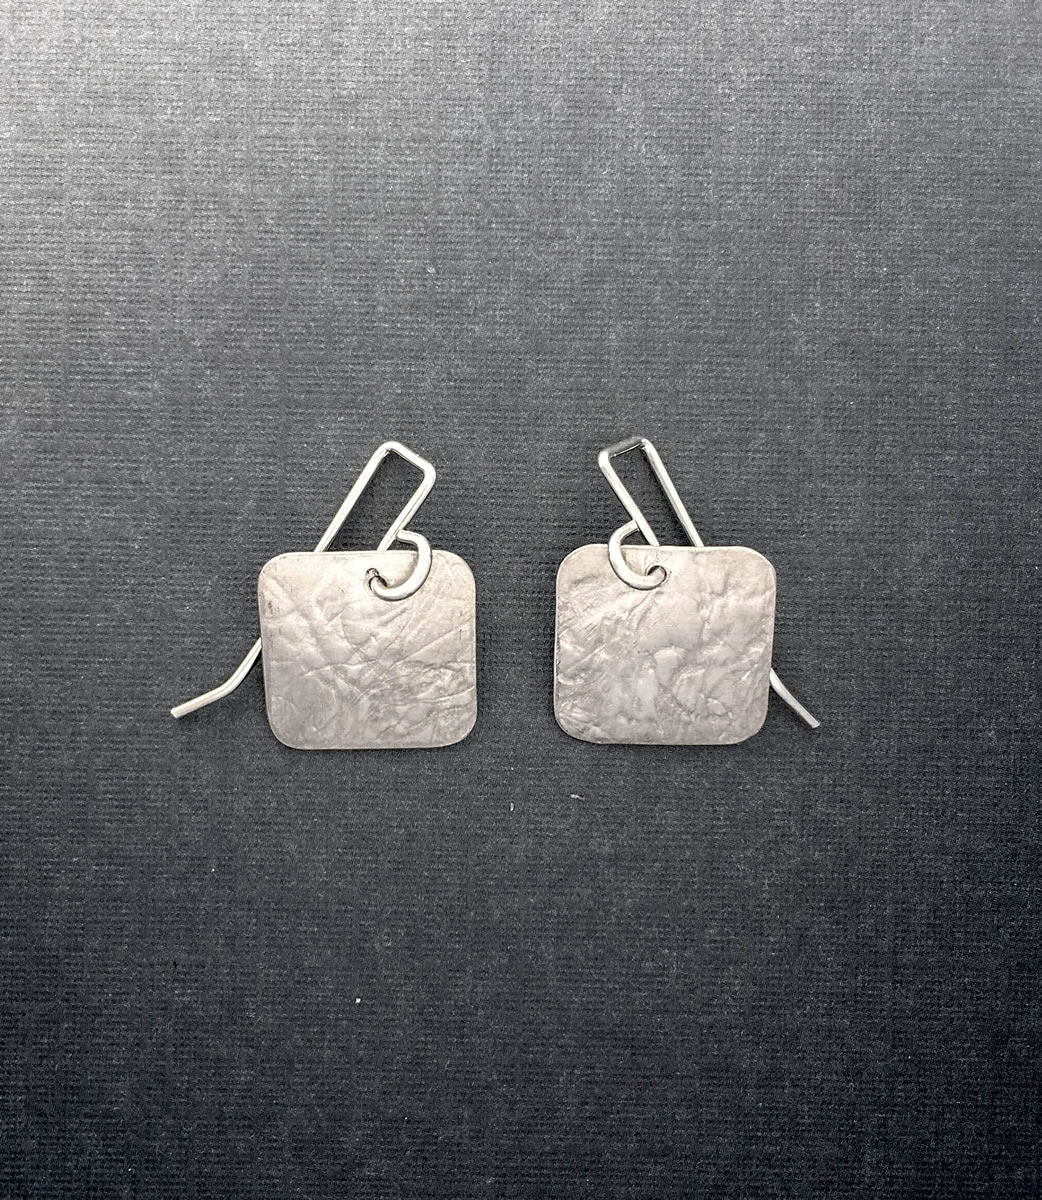 SS0003 - Silver handmade earrings under $50 textured squares brished Kathleen Barris Jewelry